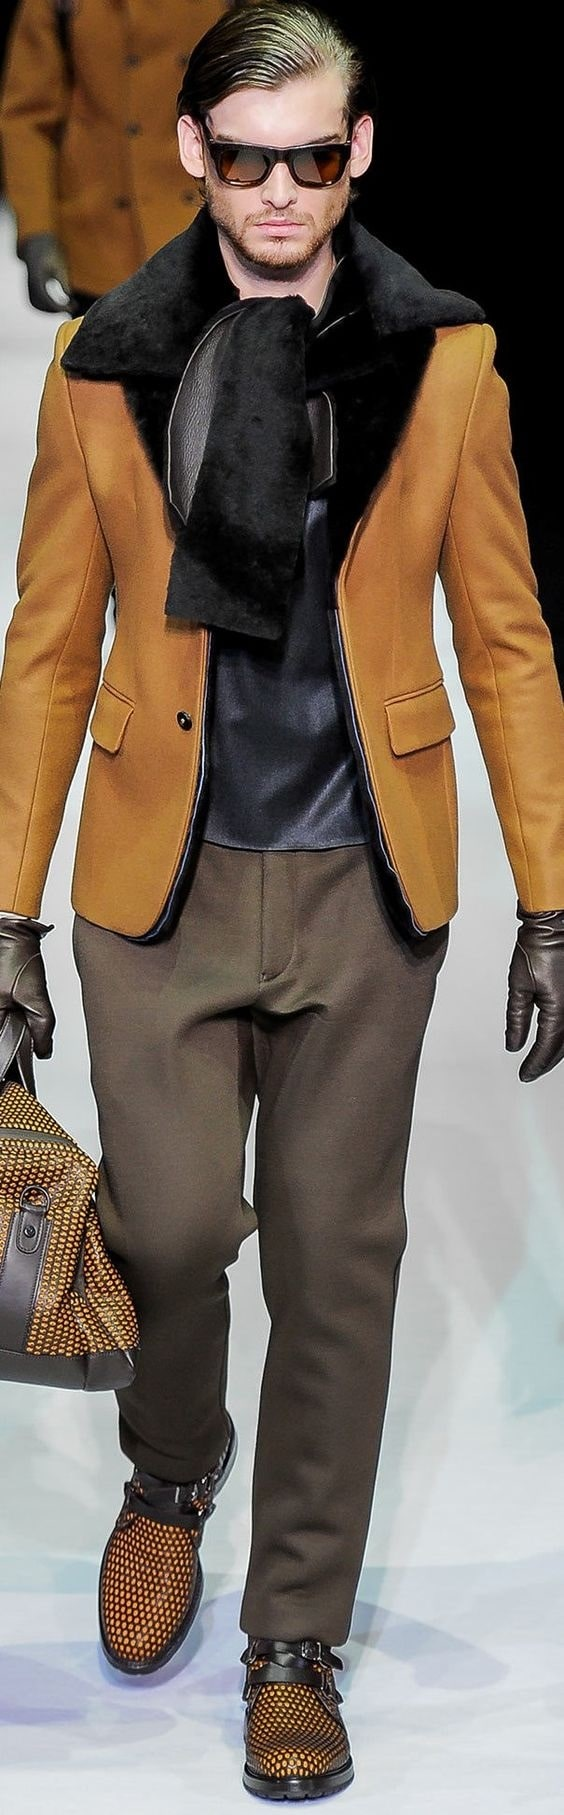 Emporio Armani men's shearling mustard color coat and pants